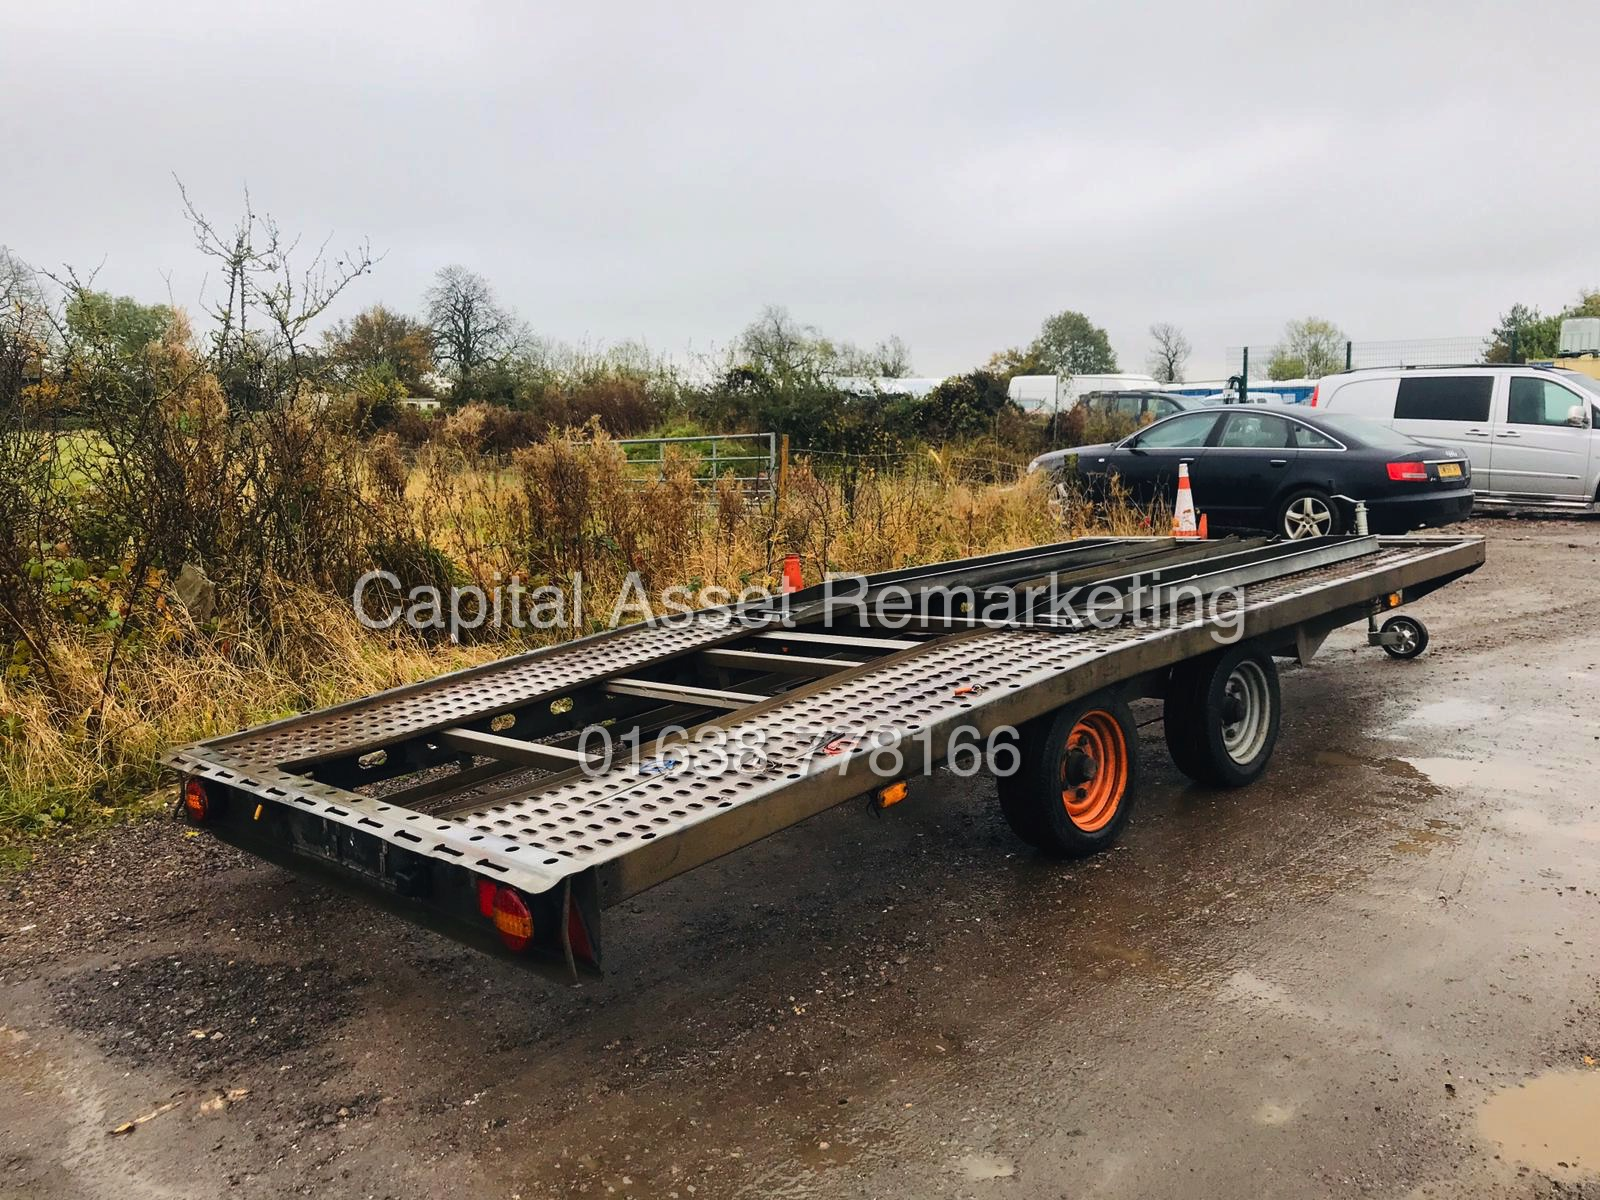 Los 16 - BRIAN JAMES TYPE CAR TRANSPORTER / RECOVERY TRAILER - TWIN AXEL - 1 OWNER - NO VAT!!!